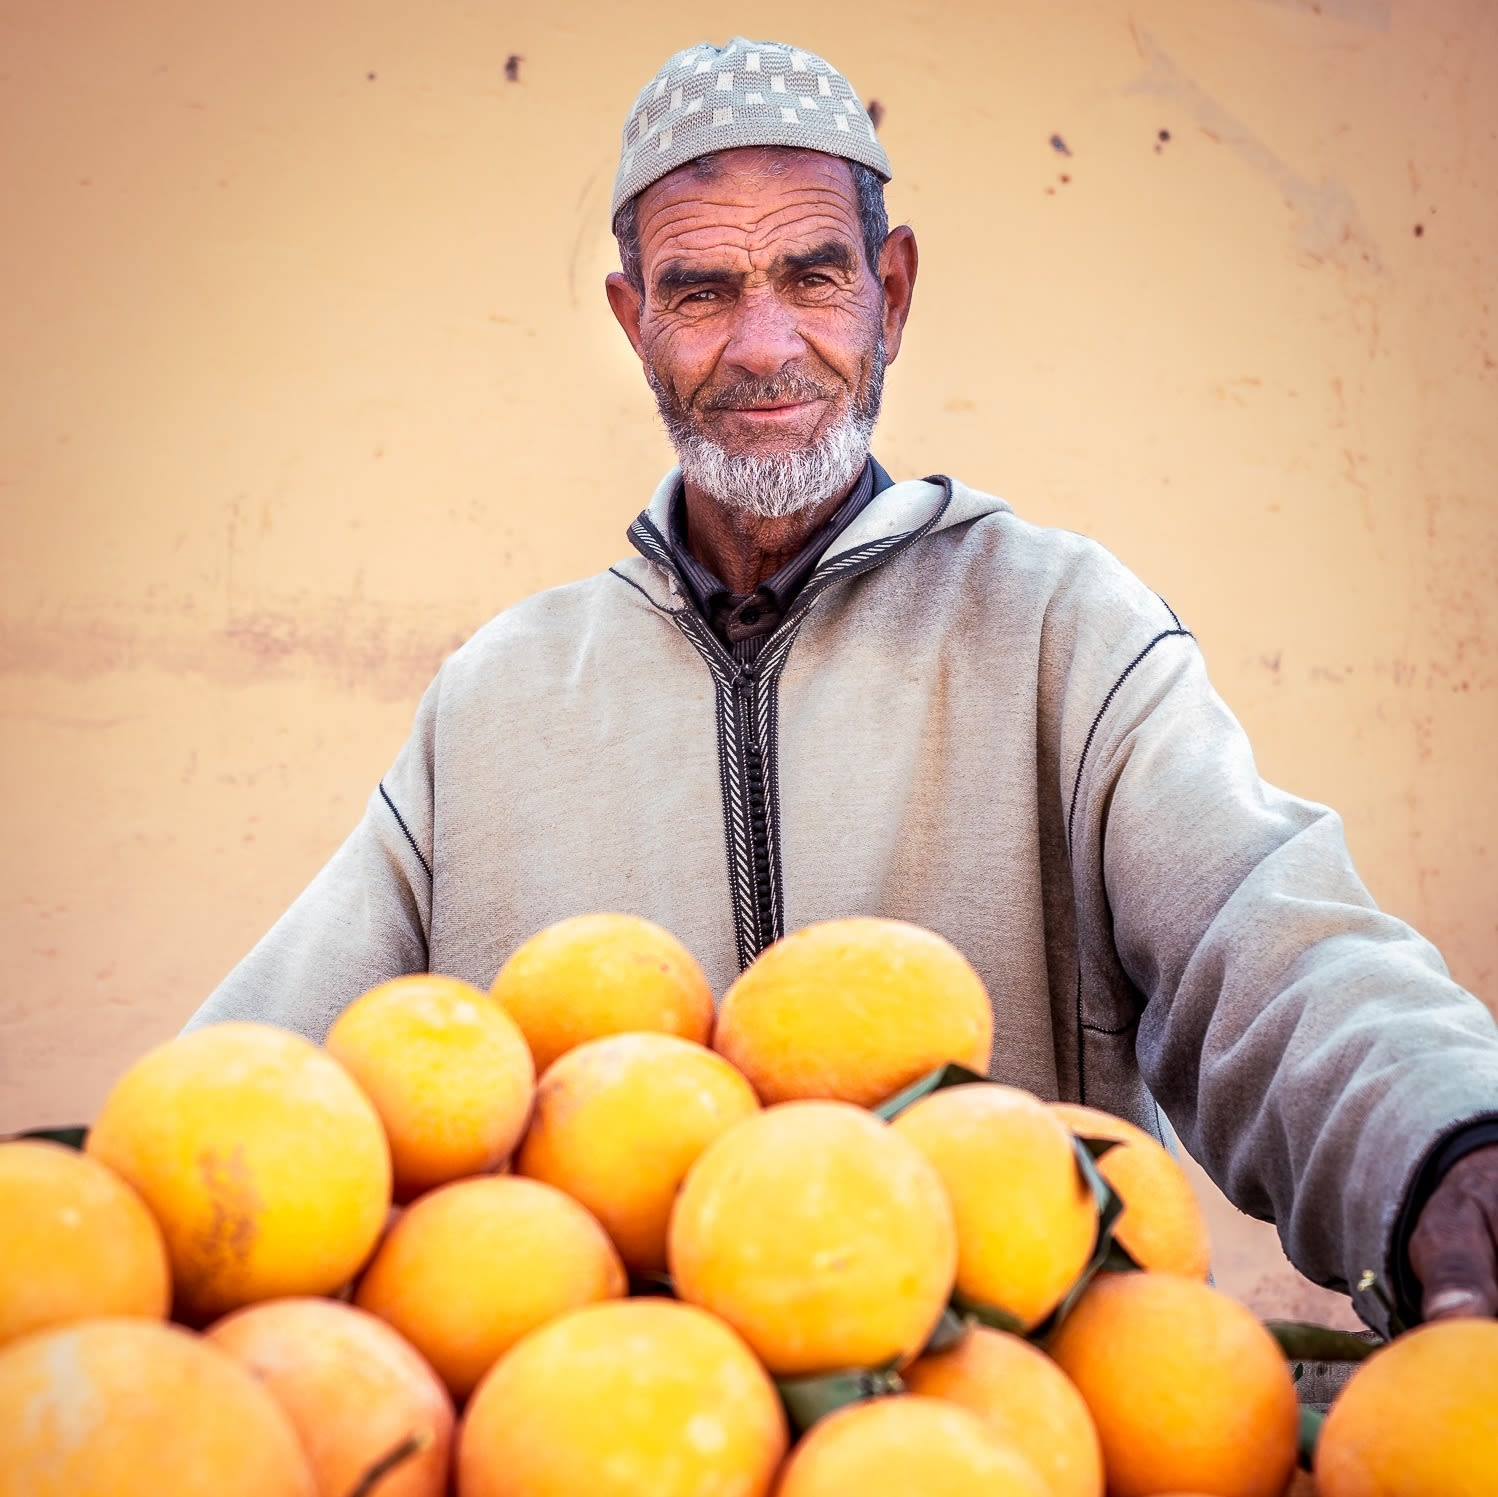 Morocco is known for its citrus fruits